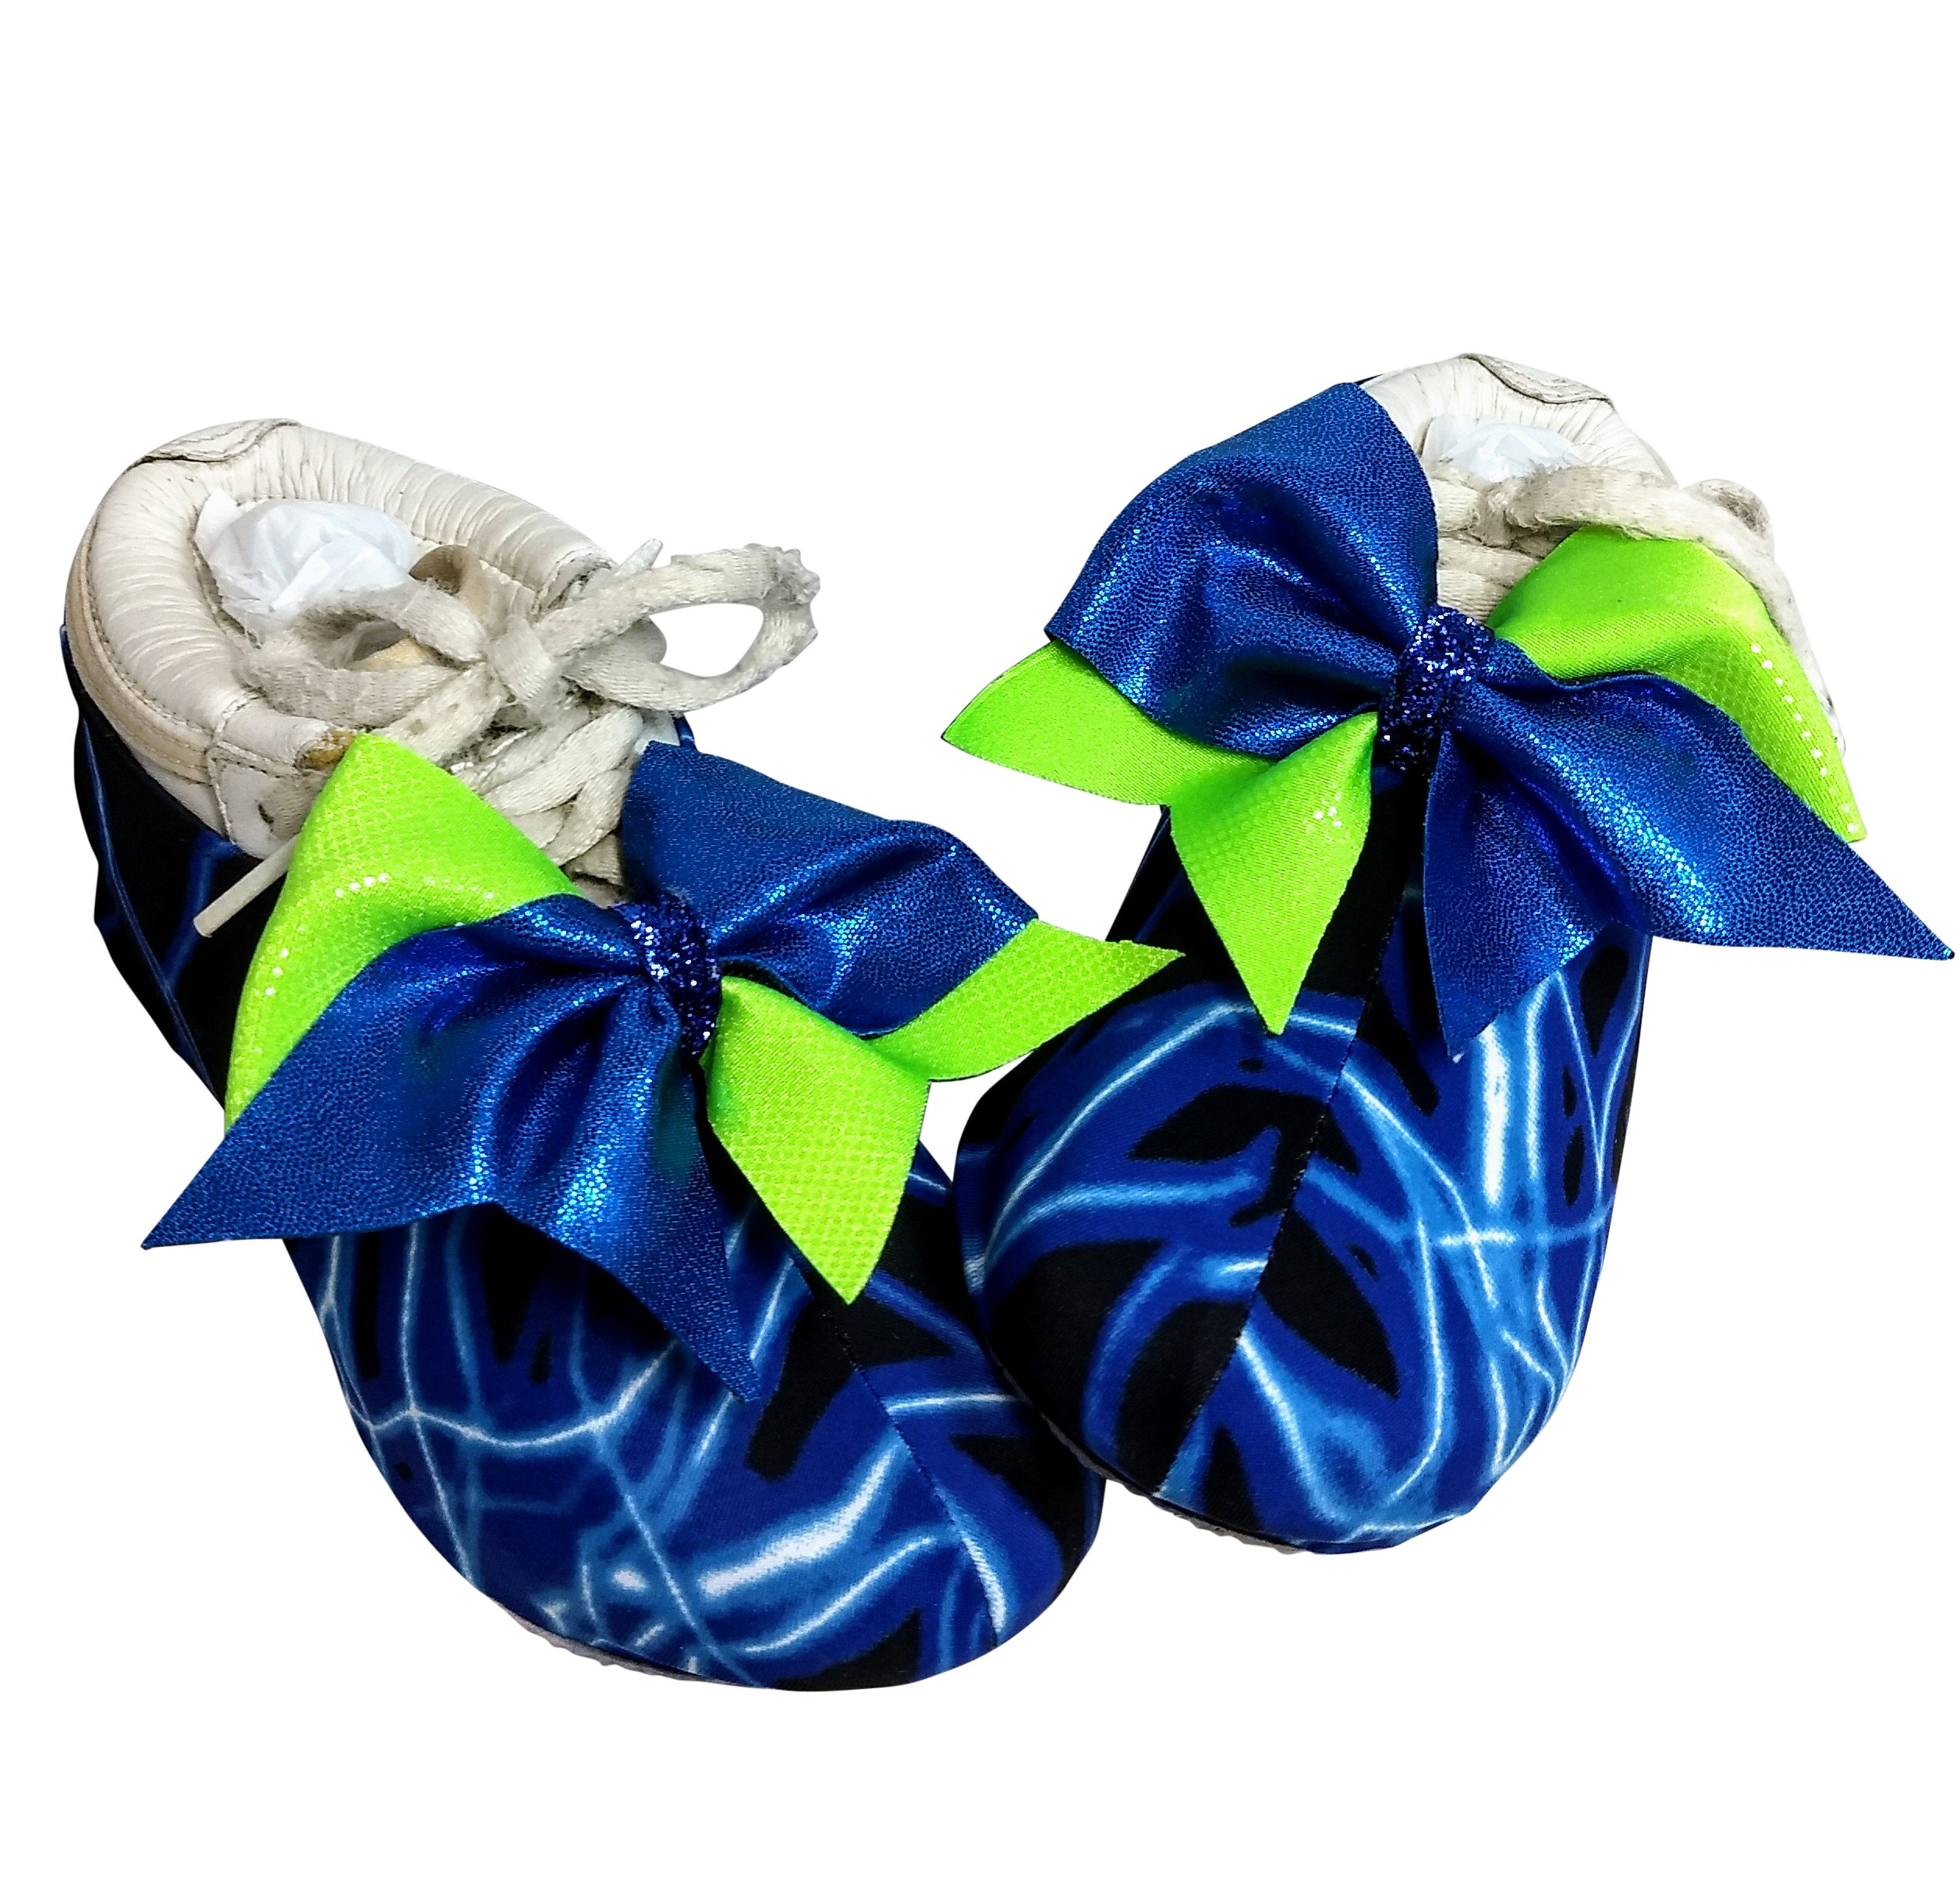 Lightning Flash Cheer Shoe Covers SW-LFS